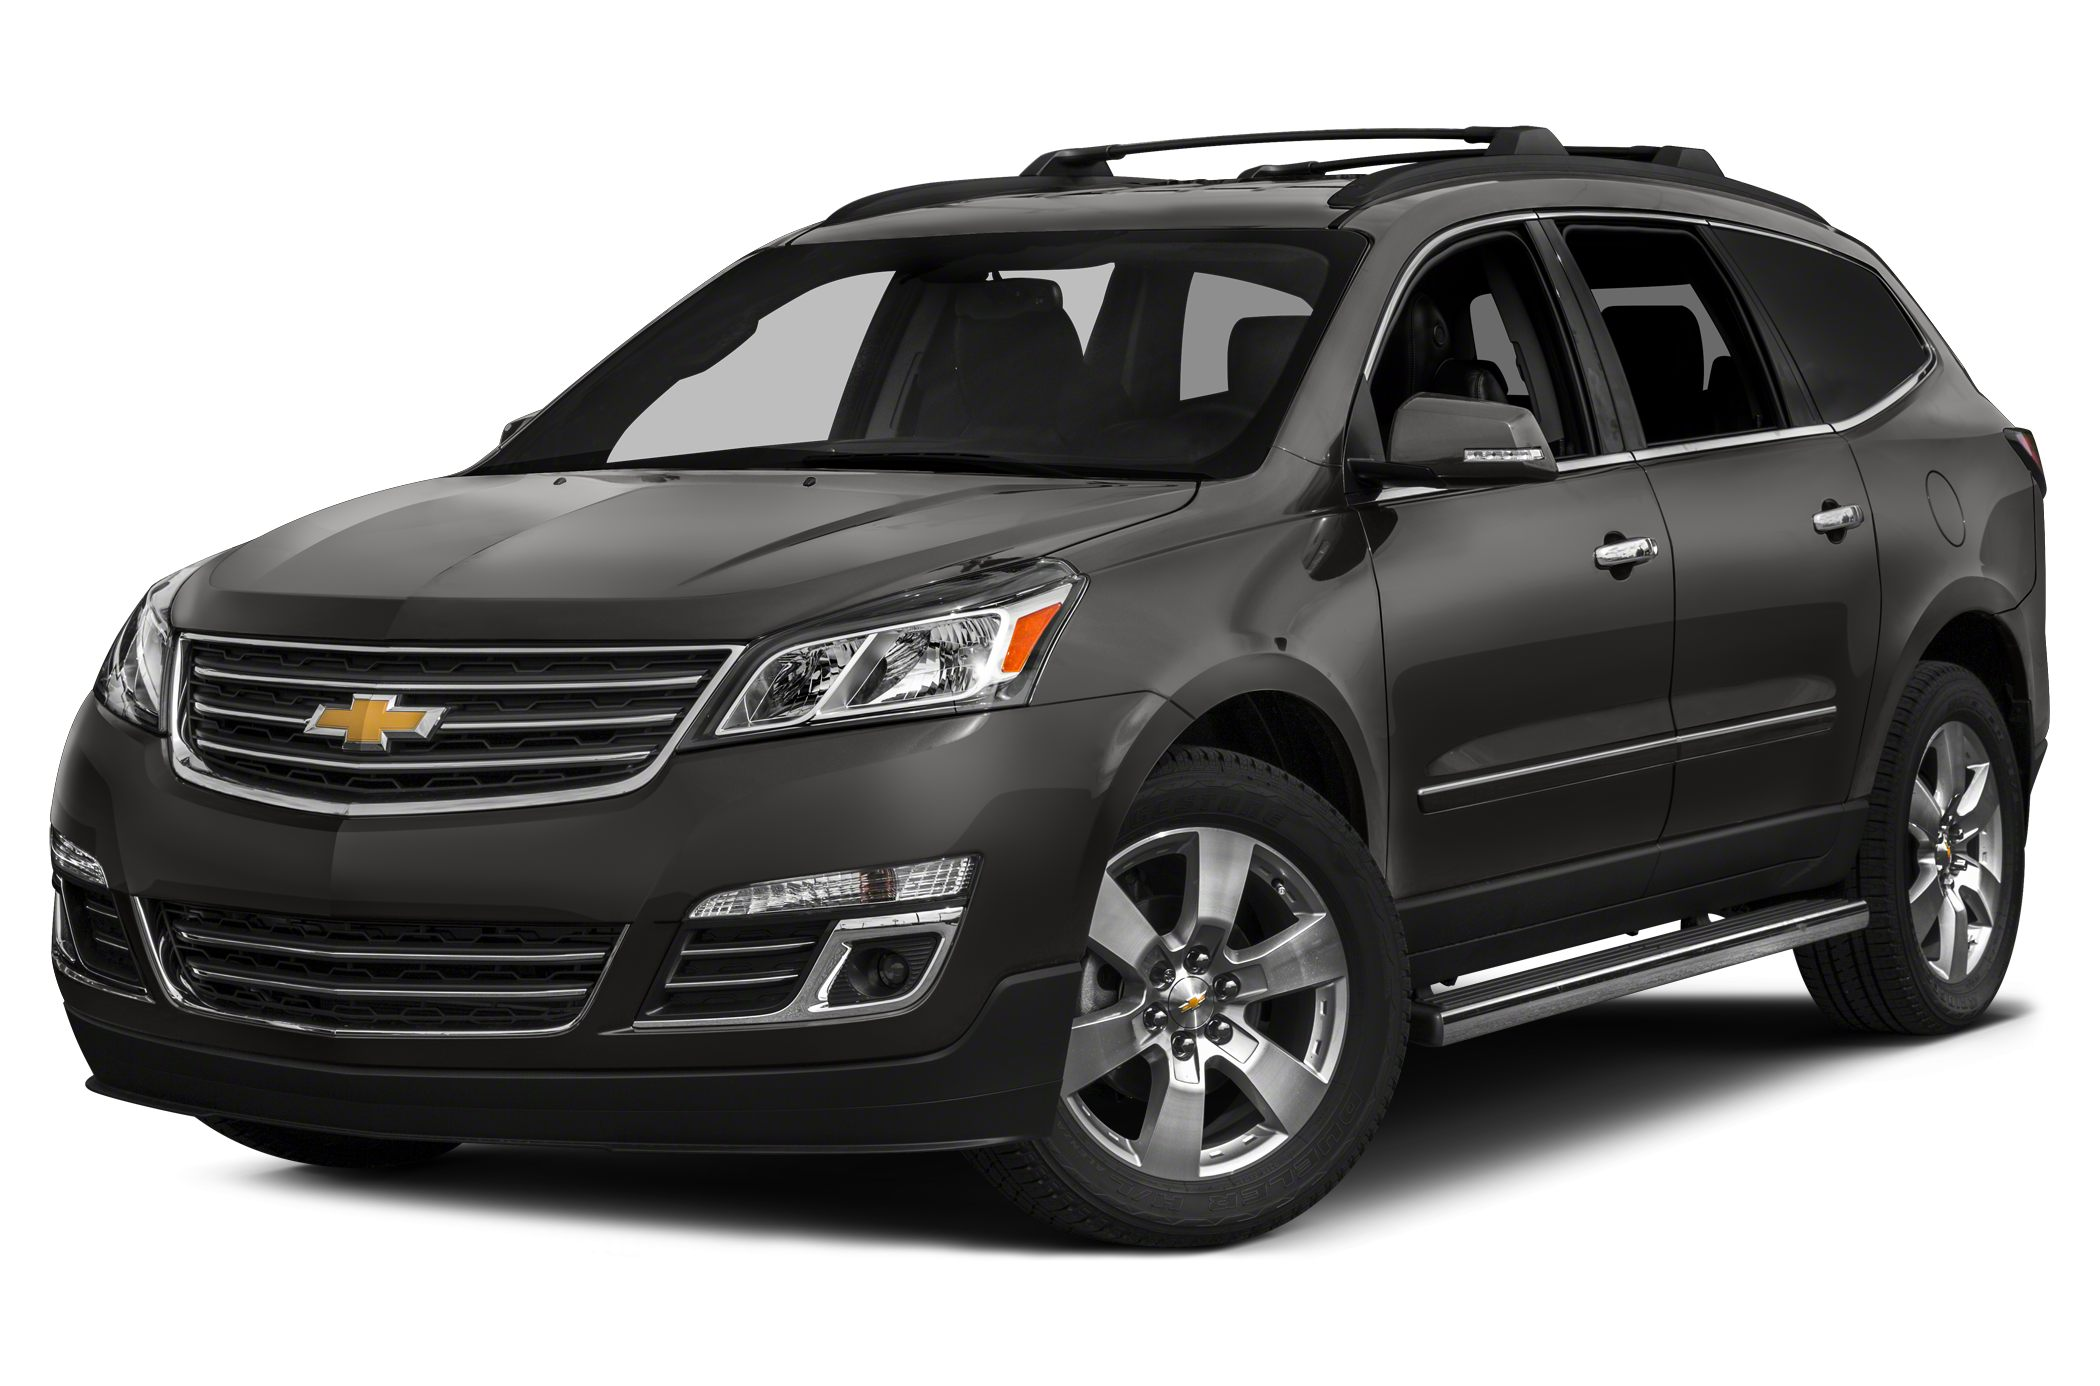 2013 Chevrolet Traverse LTZ SUV for sale in Winnsboro for $0 with 32,952 miles